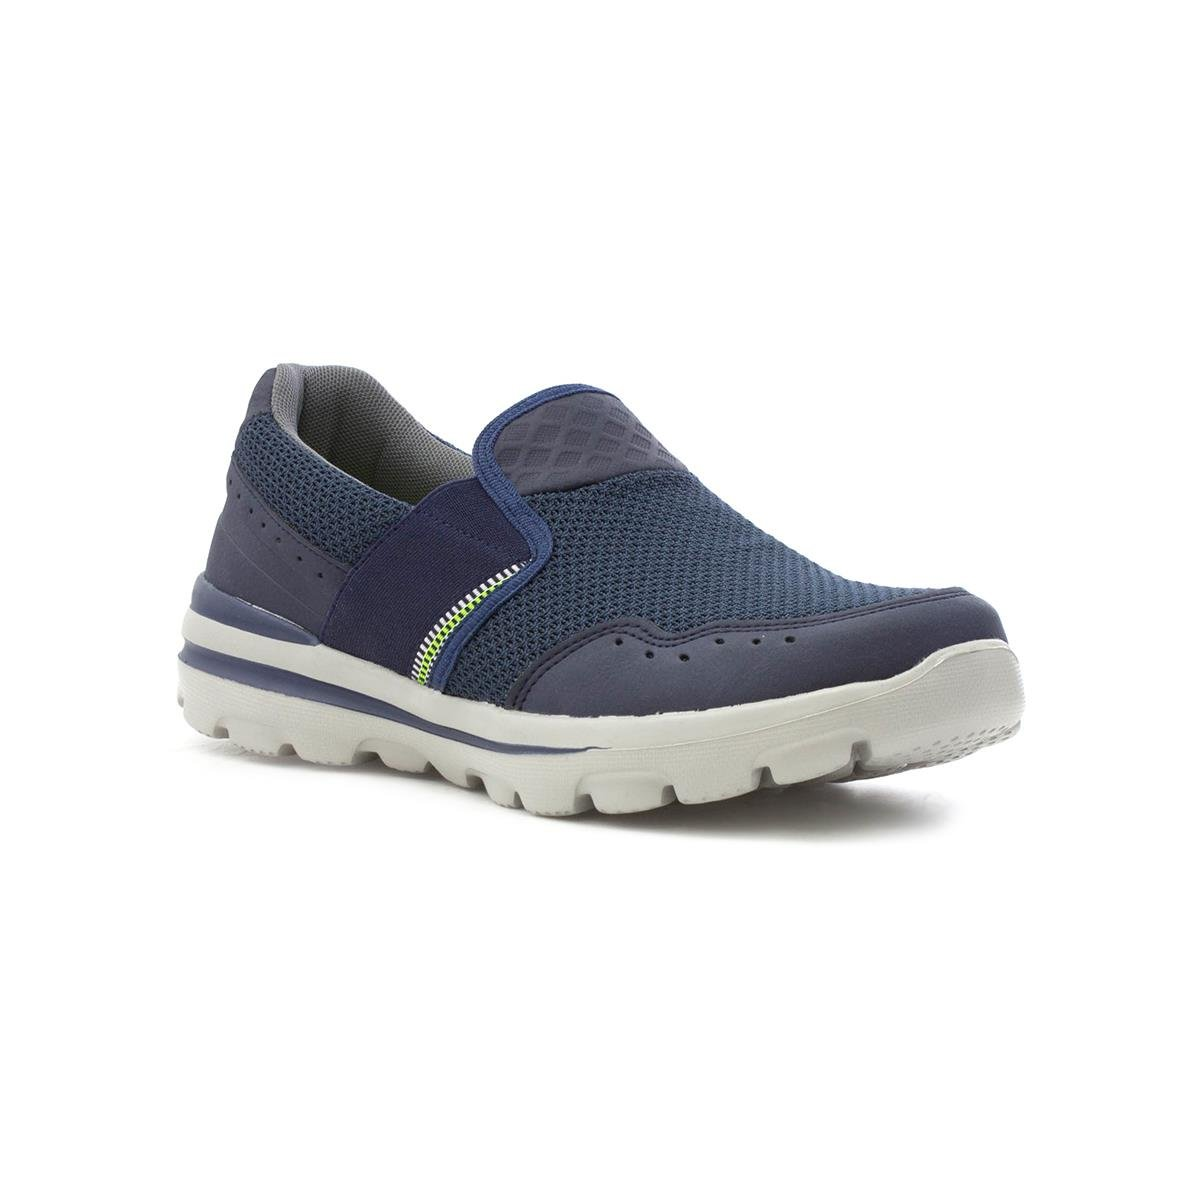 Mens Navy Slip on Sporty Casual Shoe